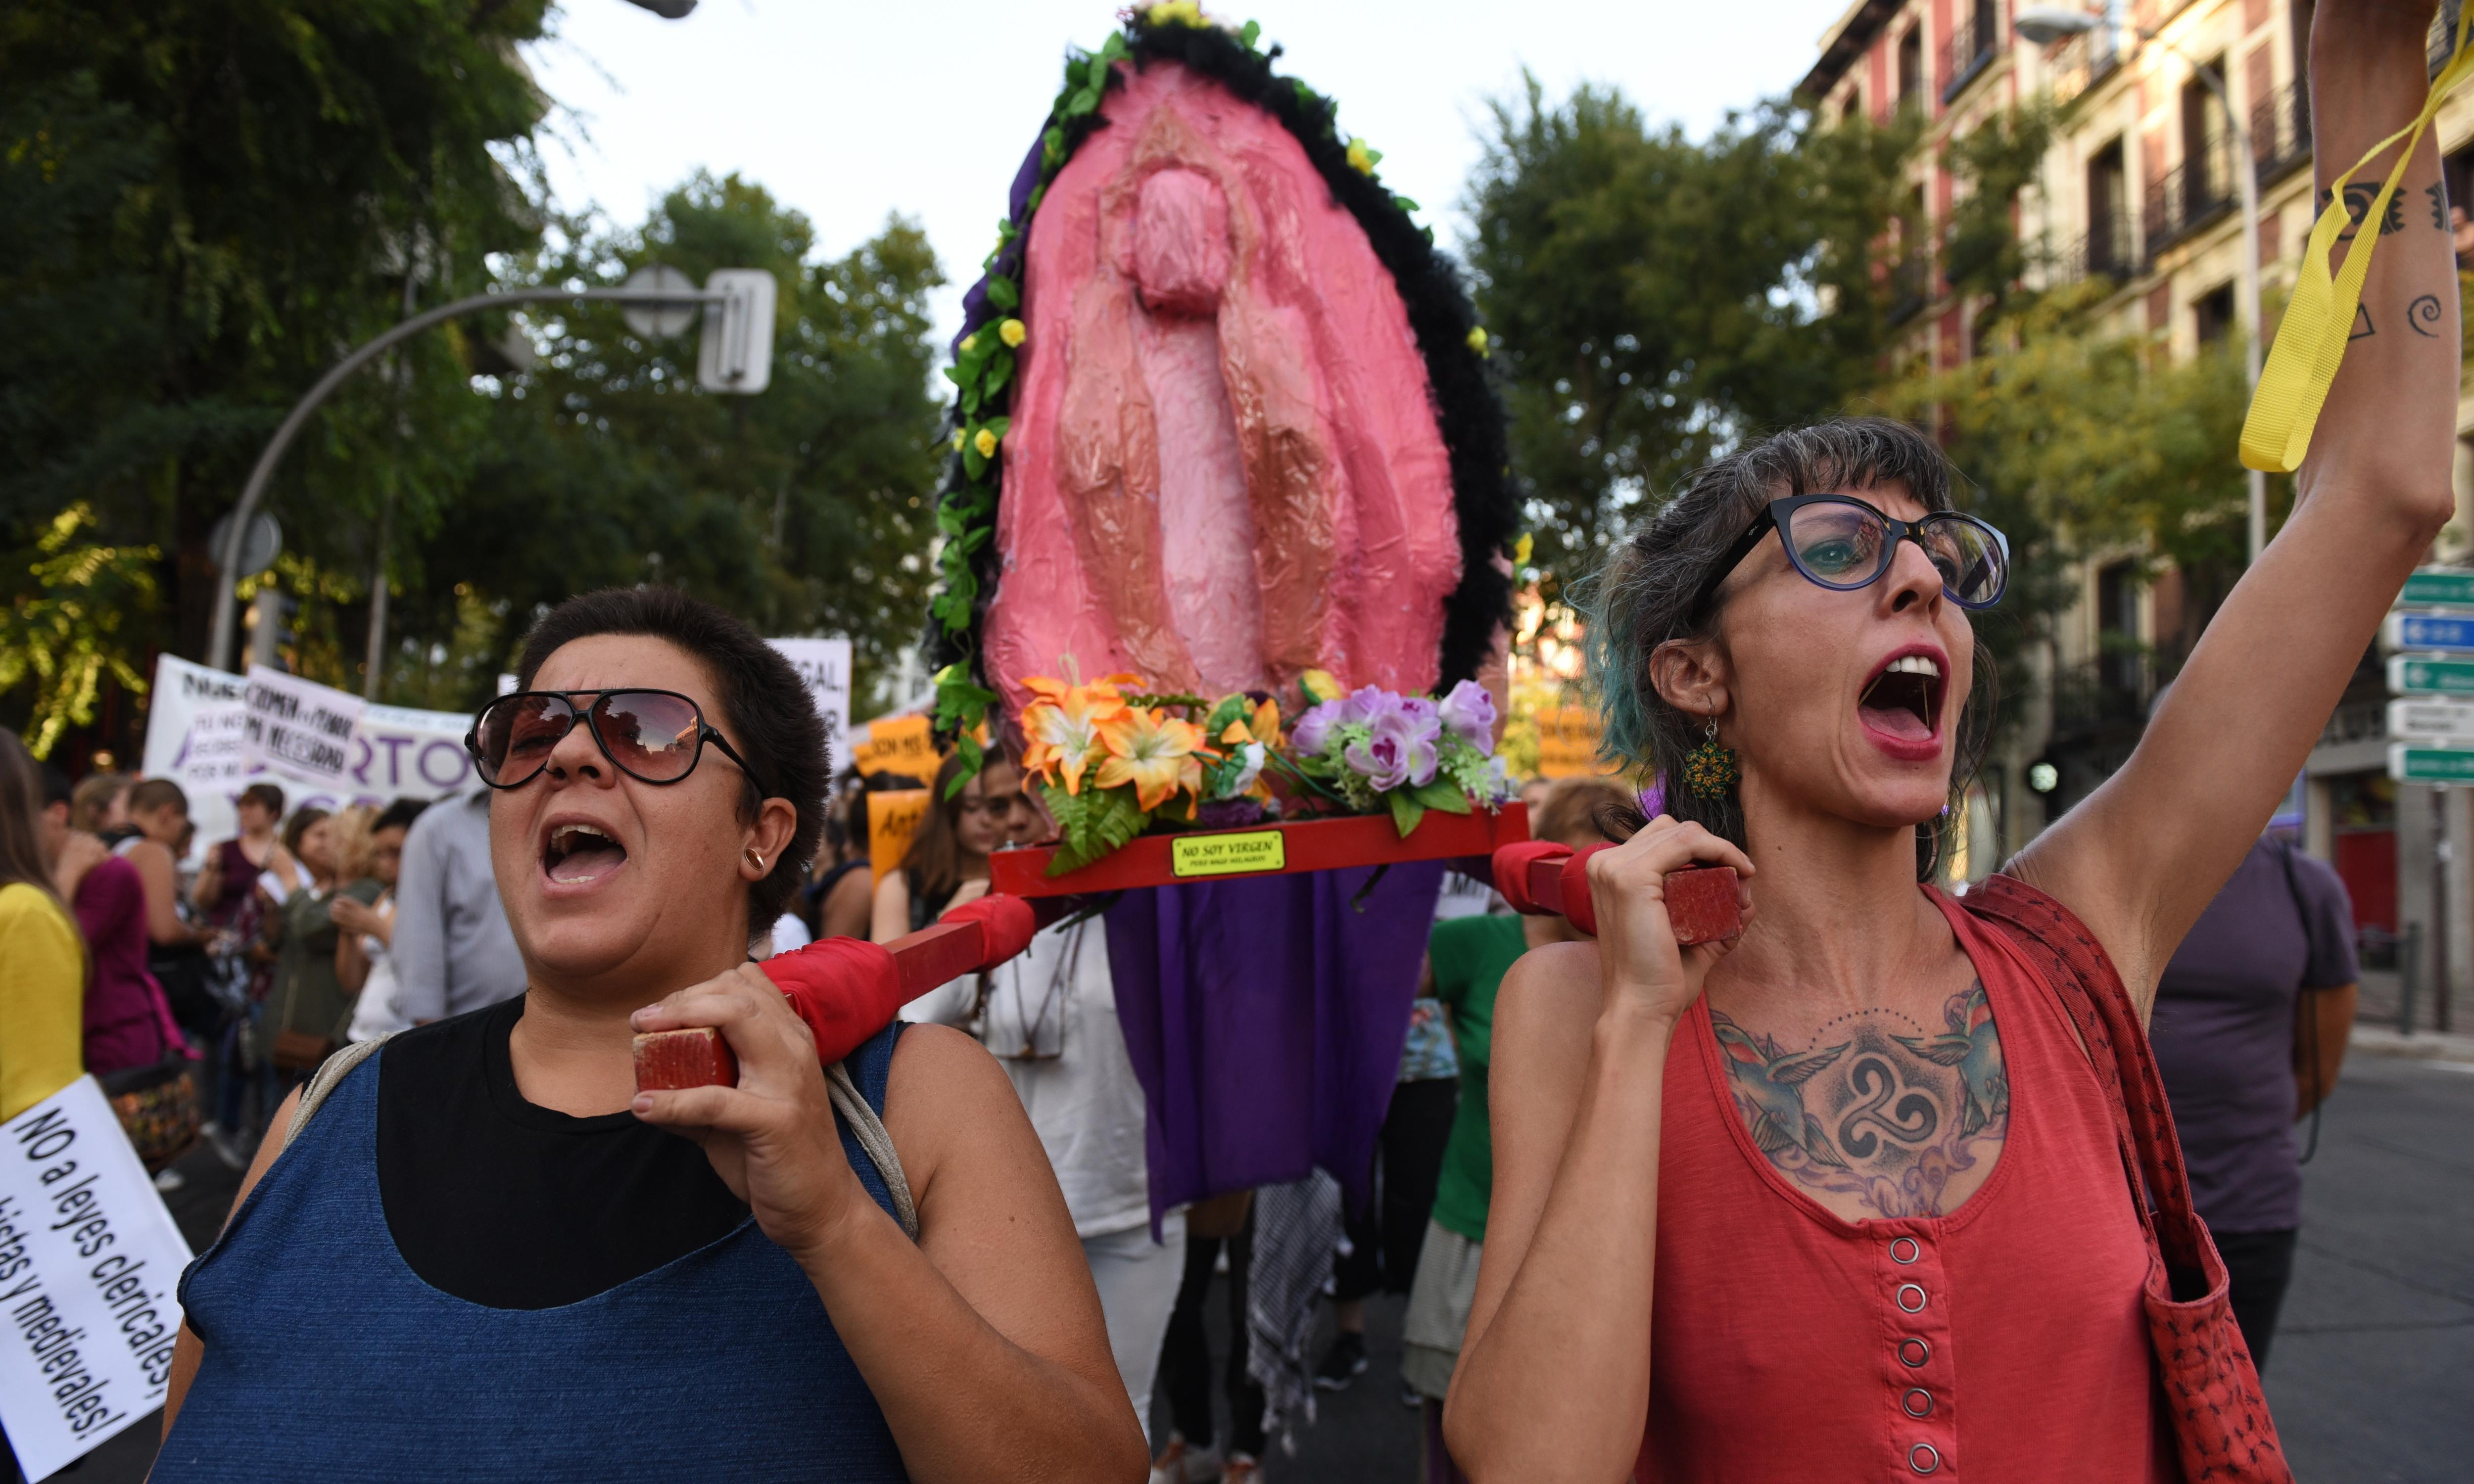 Seville judge throws out 'rebellious pussy' effigy case